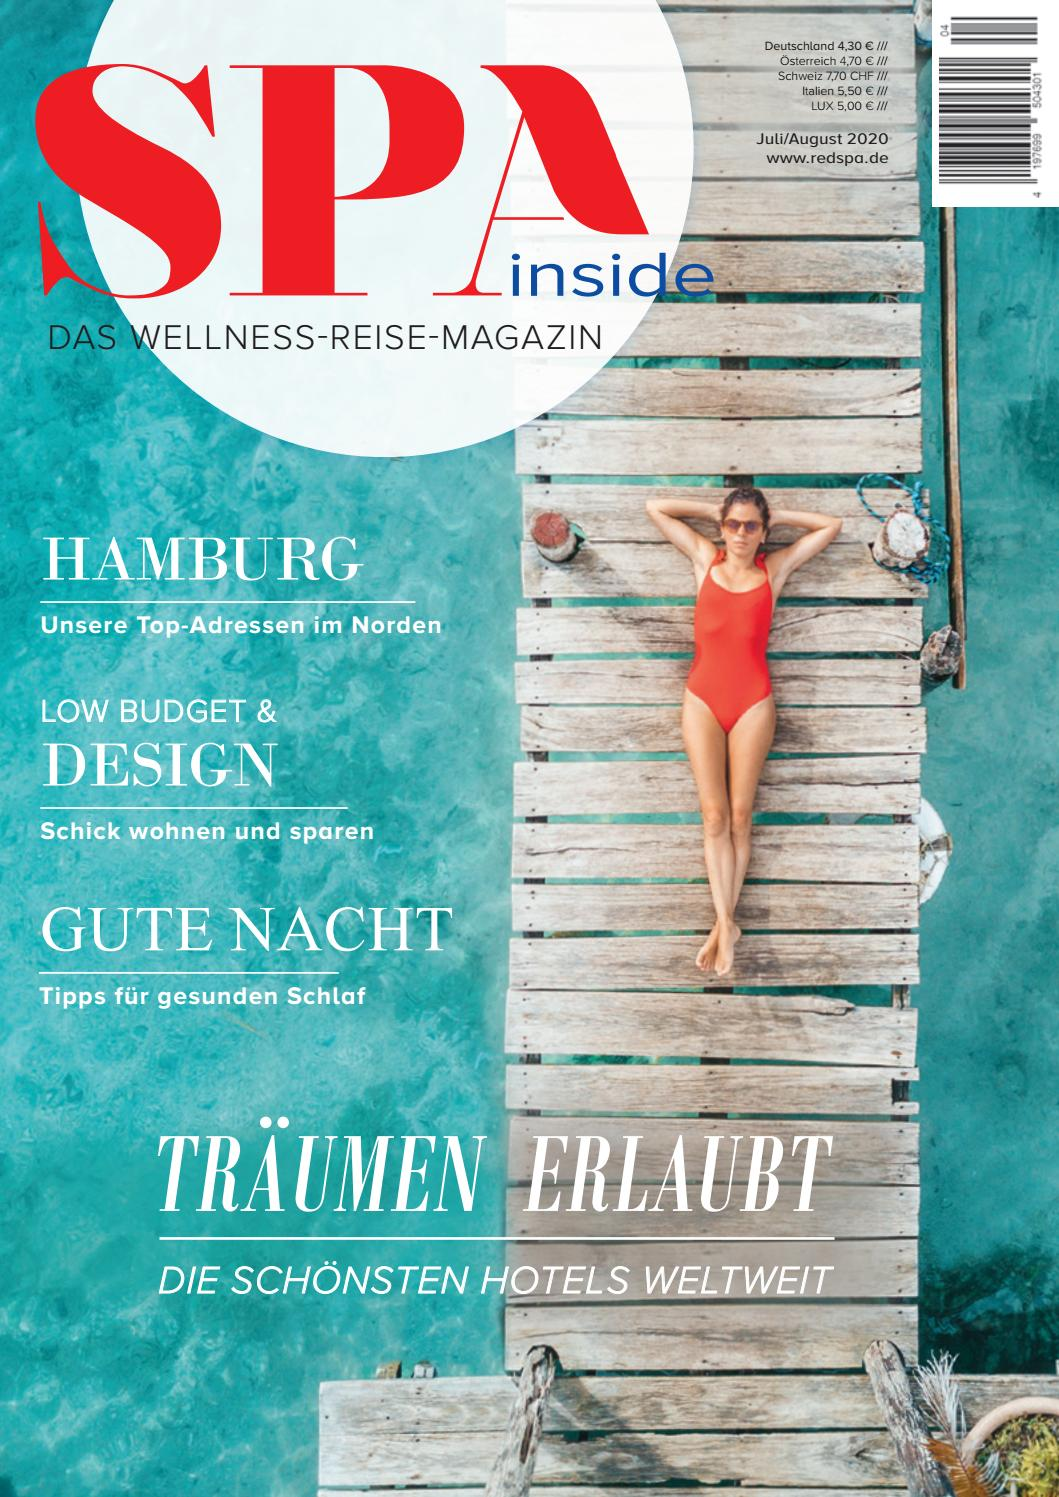 Spa Inside Das Wellness Reise Magazin Ausgabe 04 2020 By Redspa Media Issuu